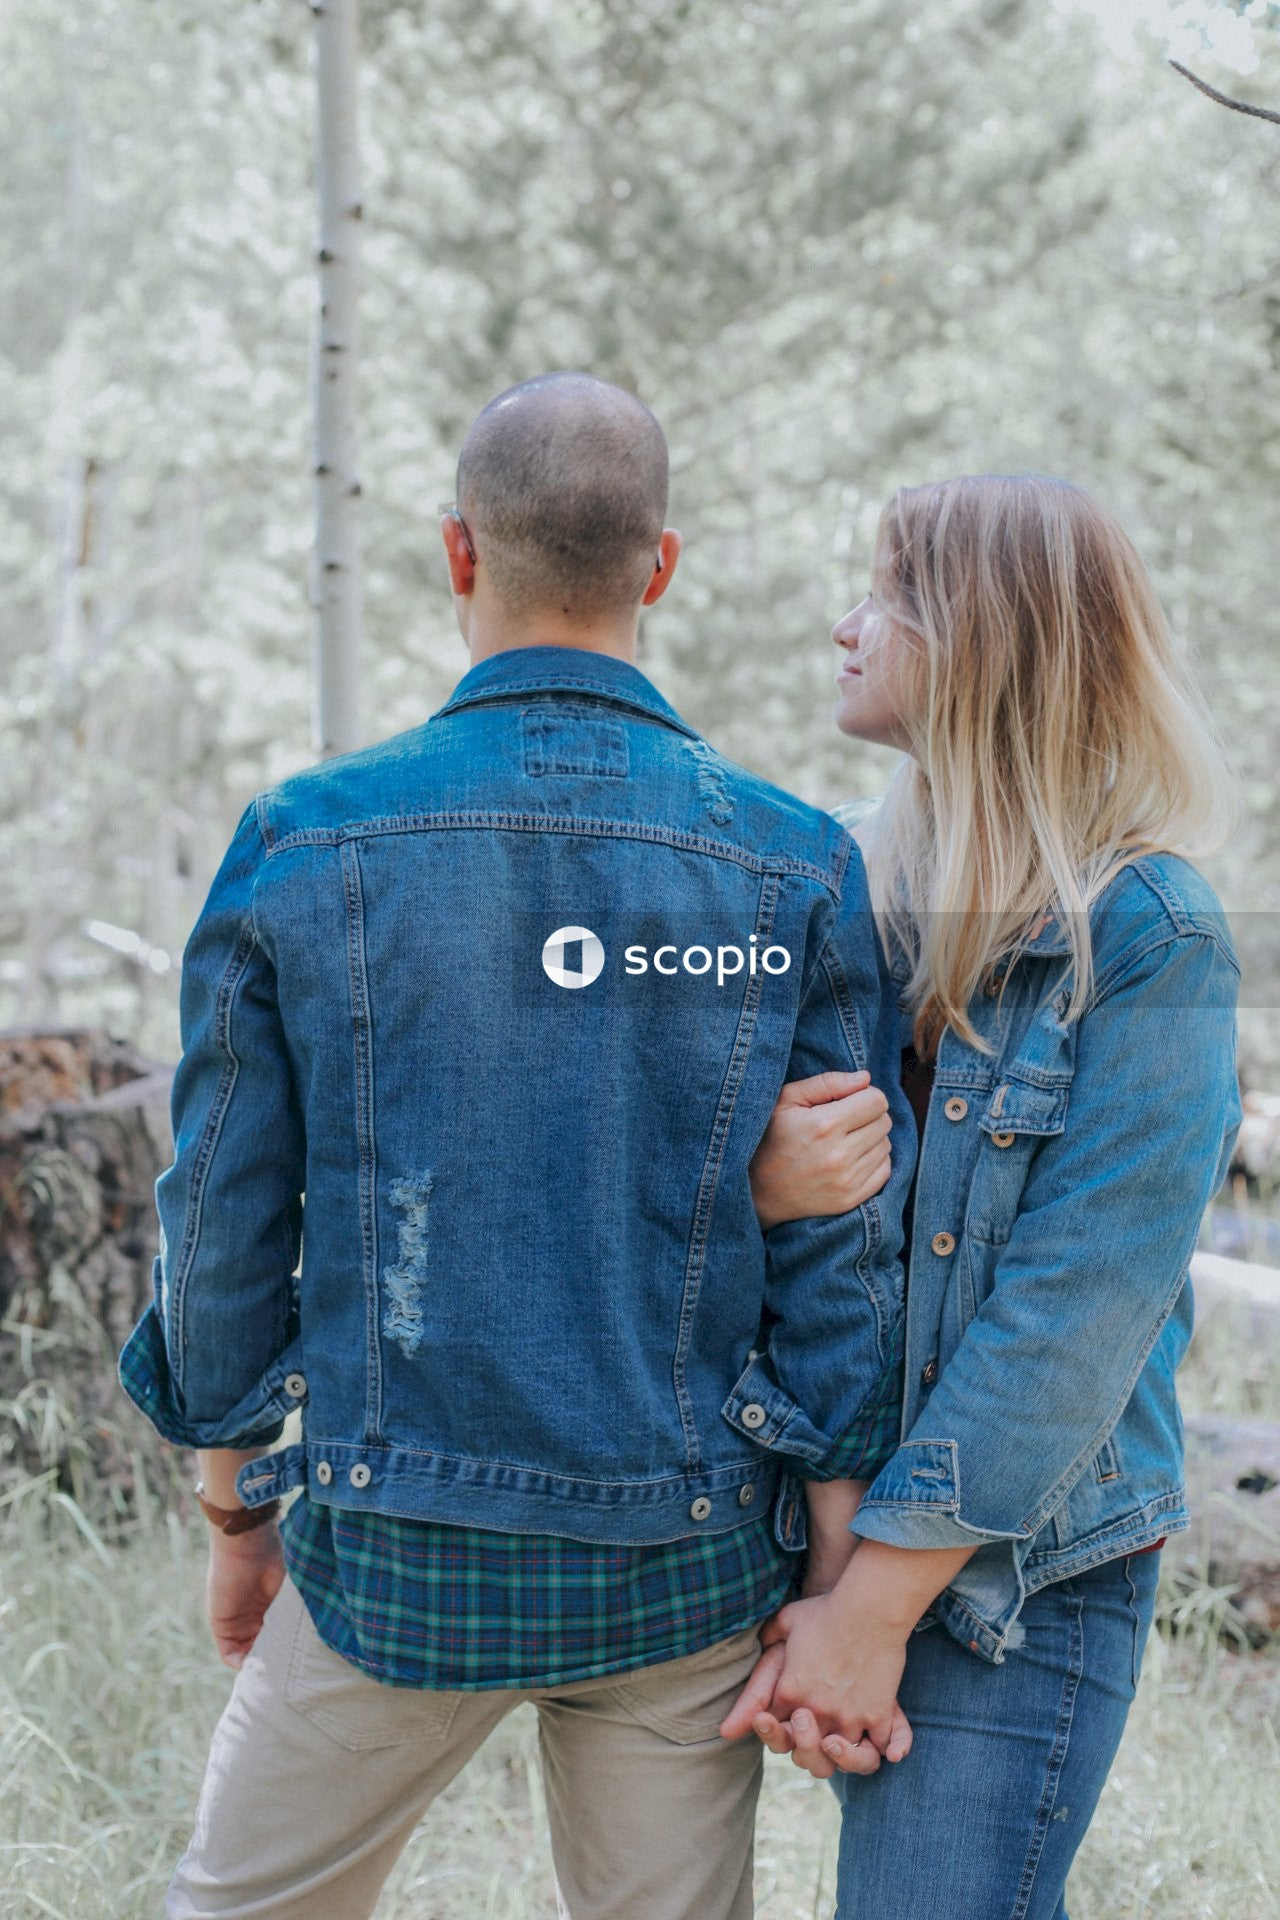 Man in blue denim jacket standing beside woman in blue denim jacket